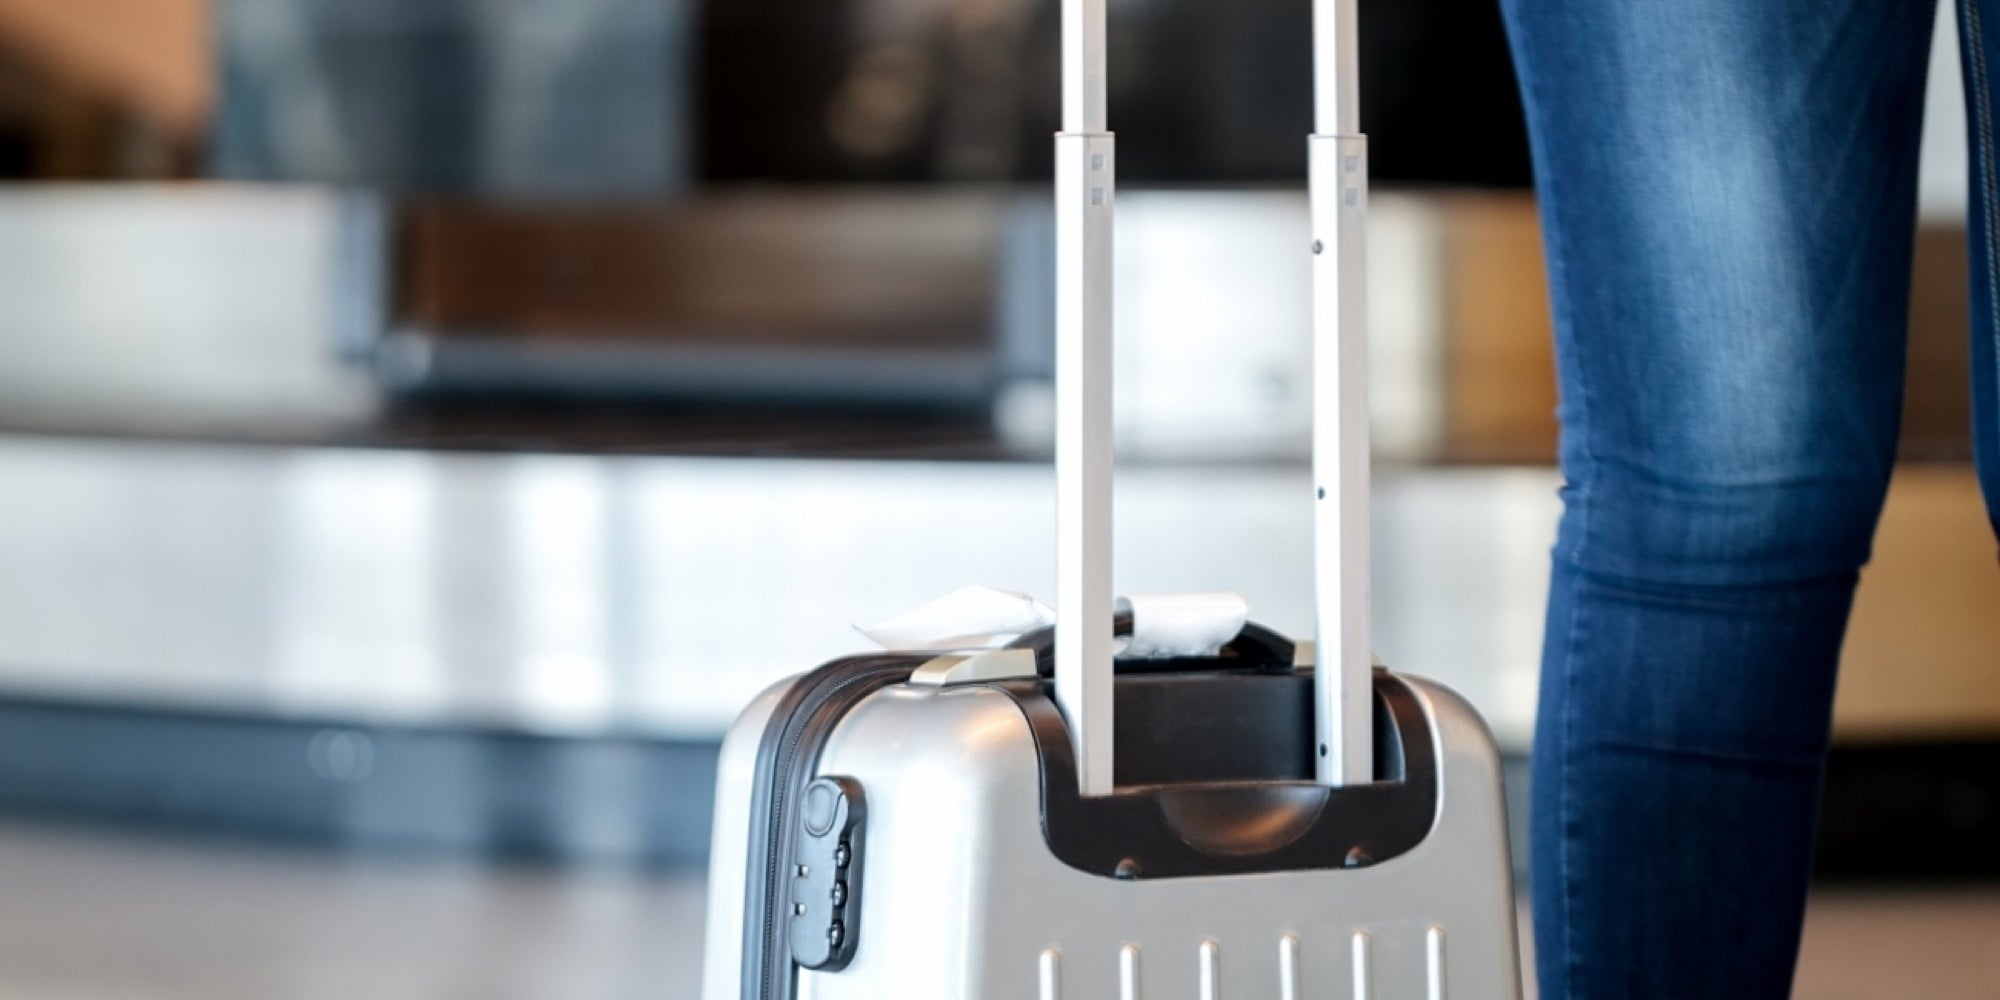 Avoid checking luggage whenever possible